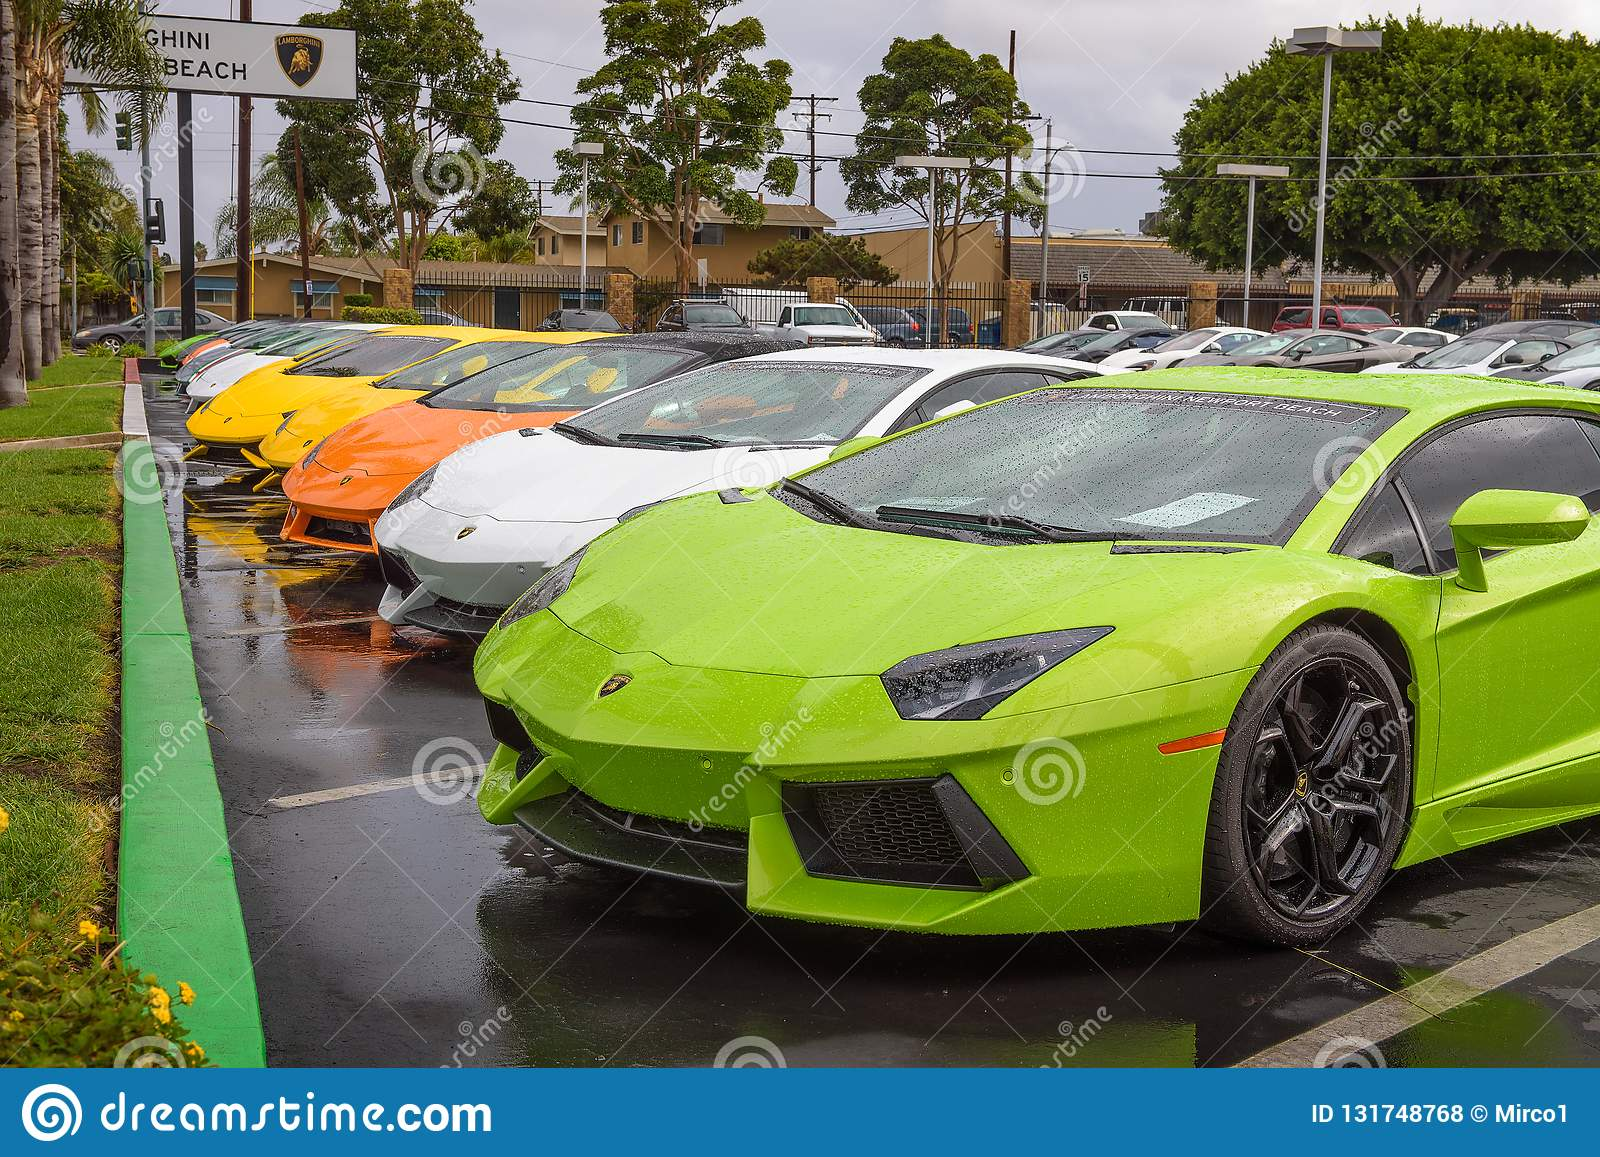 563 Lamborghini Parked Photos - Free & Royalty-Free Stock Photos from  Dreamstime